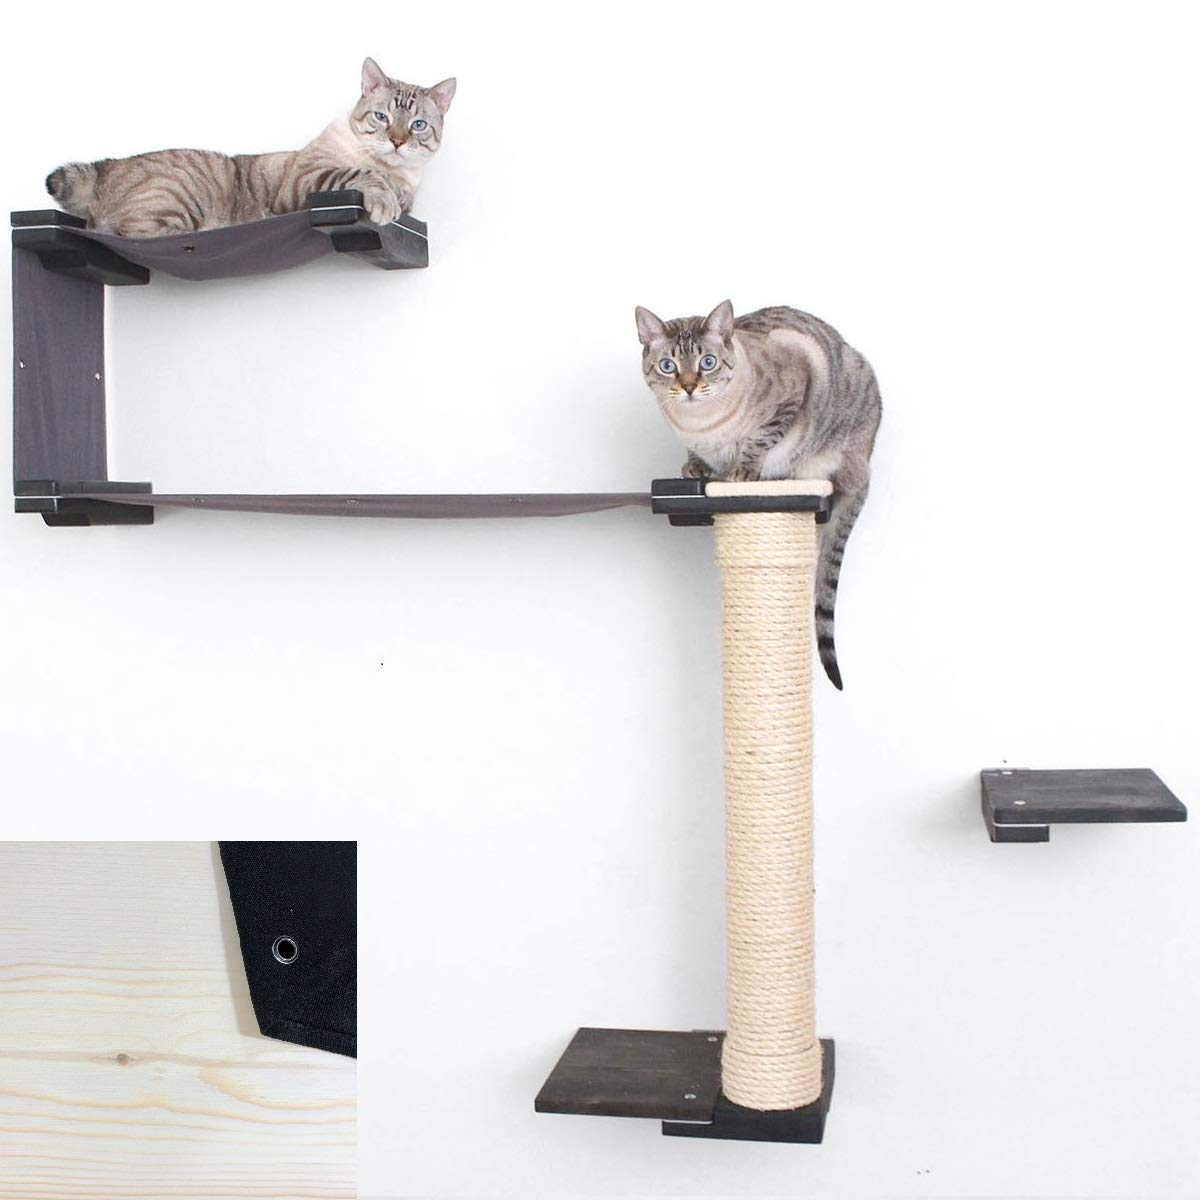 CatastrophiCreations Cat Mod Crow's nest - Multiple-Level Cat Hammock & Climbing Activity Center - Handcrafted Wall-Mounted Cat Tree Shelves